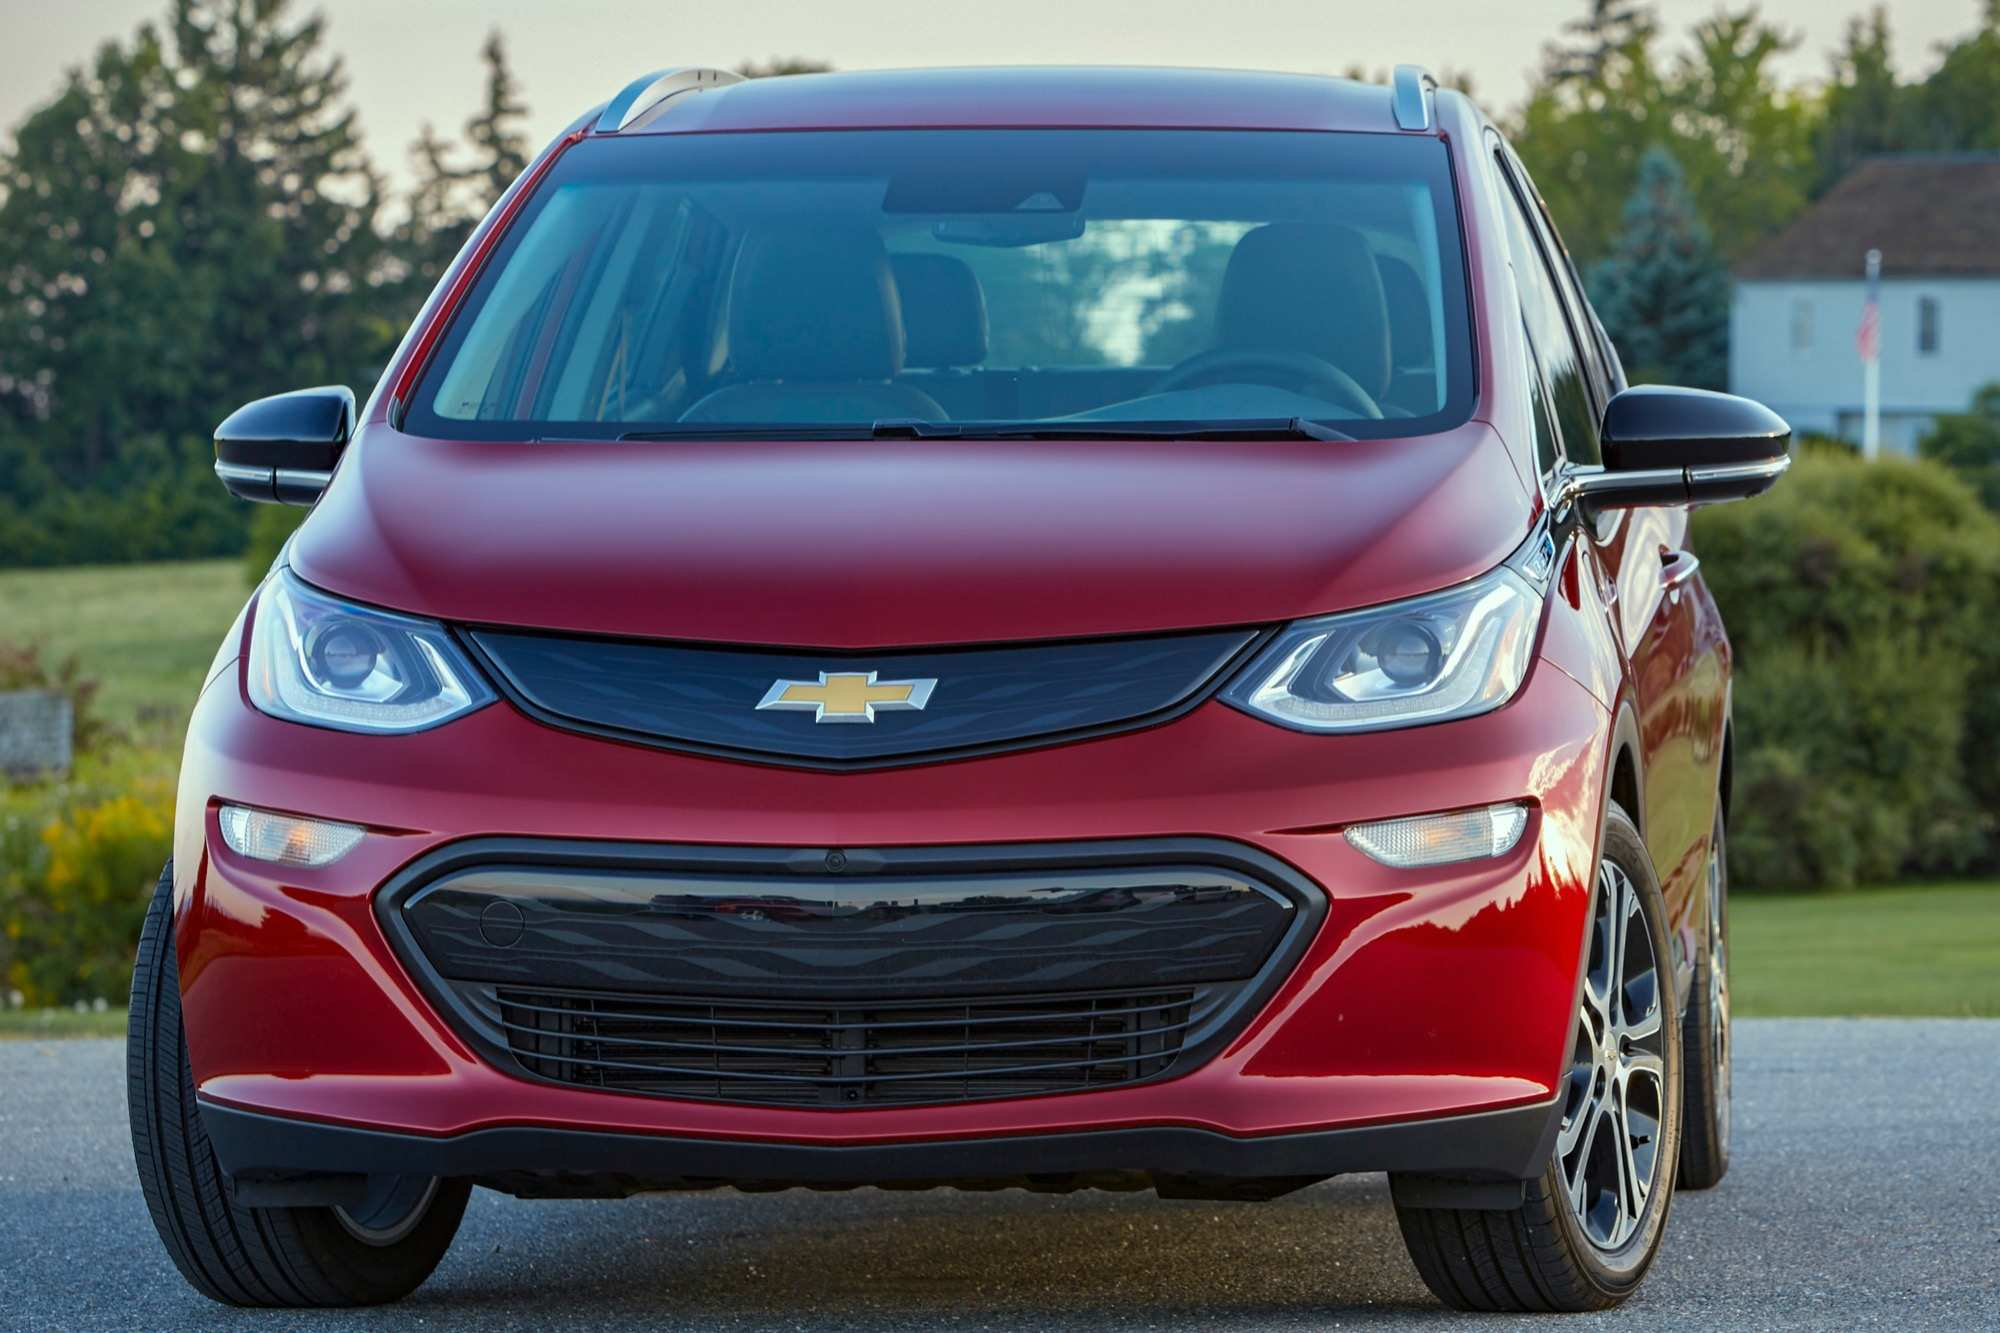 86 Great Chevrolet Volt 2019 Canada First Drive Wallpaper with Chevrolet Volt 2019 Canada First Drive